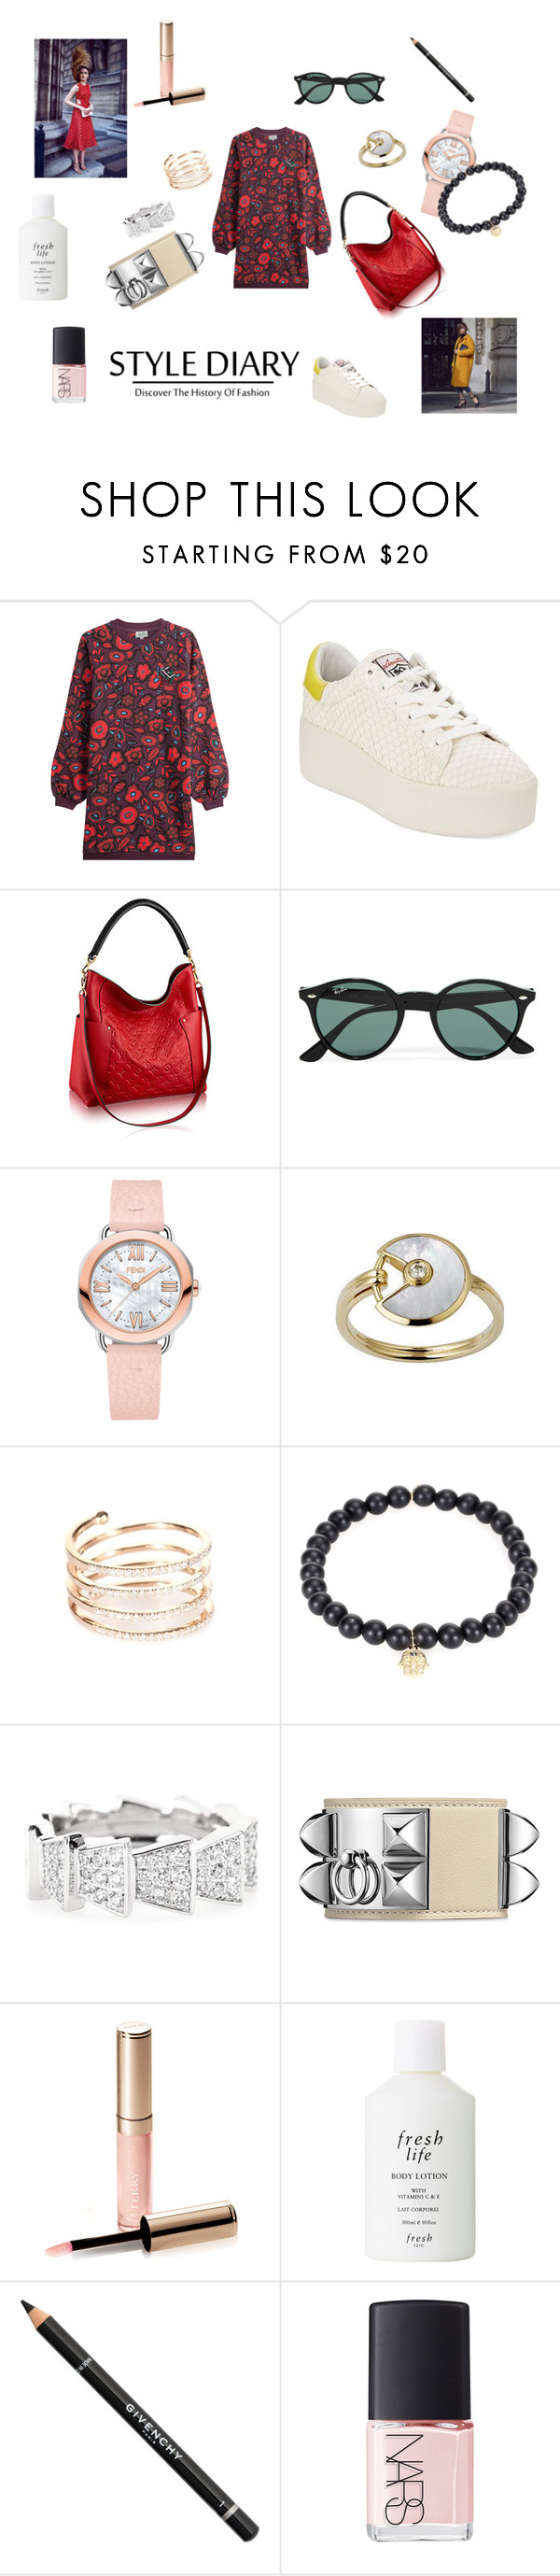 """""""City and running in a hurry"""" by maria-chamourlidou ❤ liked on Polyvore featuring Kenzo, Ash, Ray-Ban, Fendi, Cartier, STONE, Sydney Evan, Cada, By Terry and Fresh"""